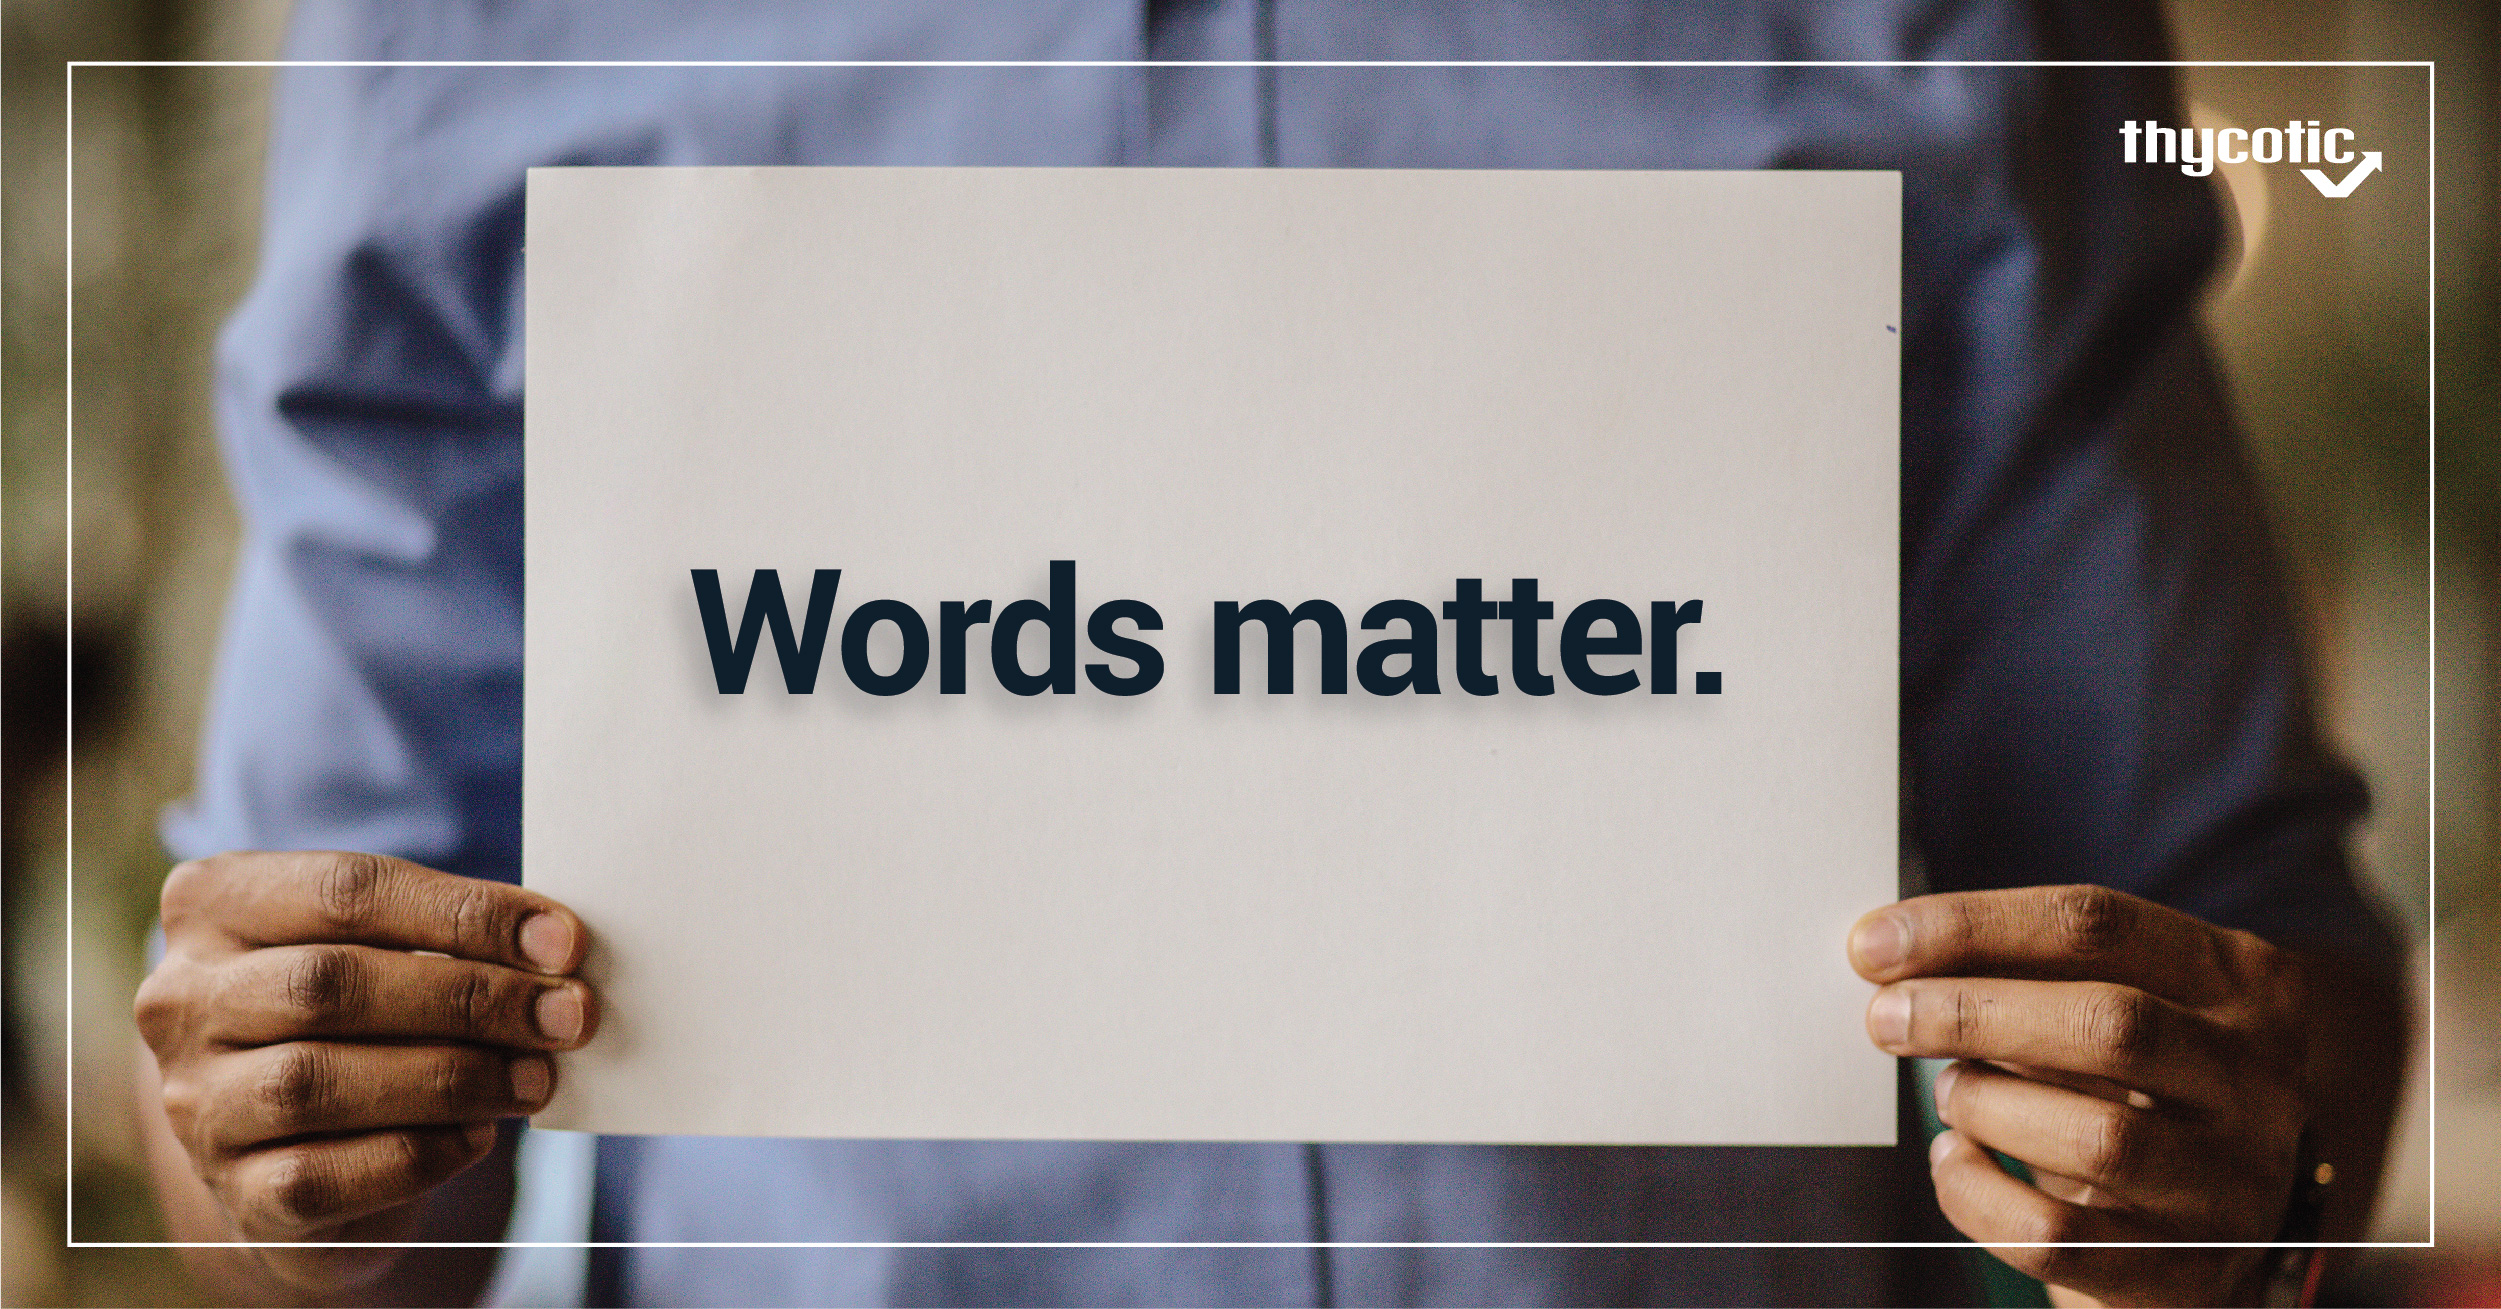 Words matter in tech